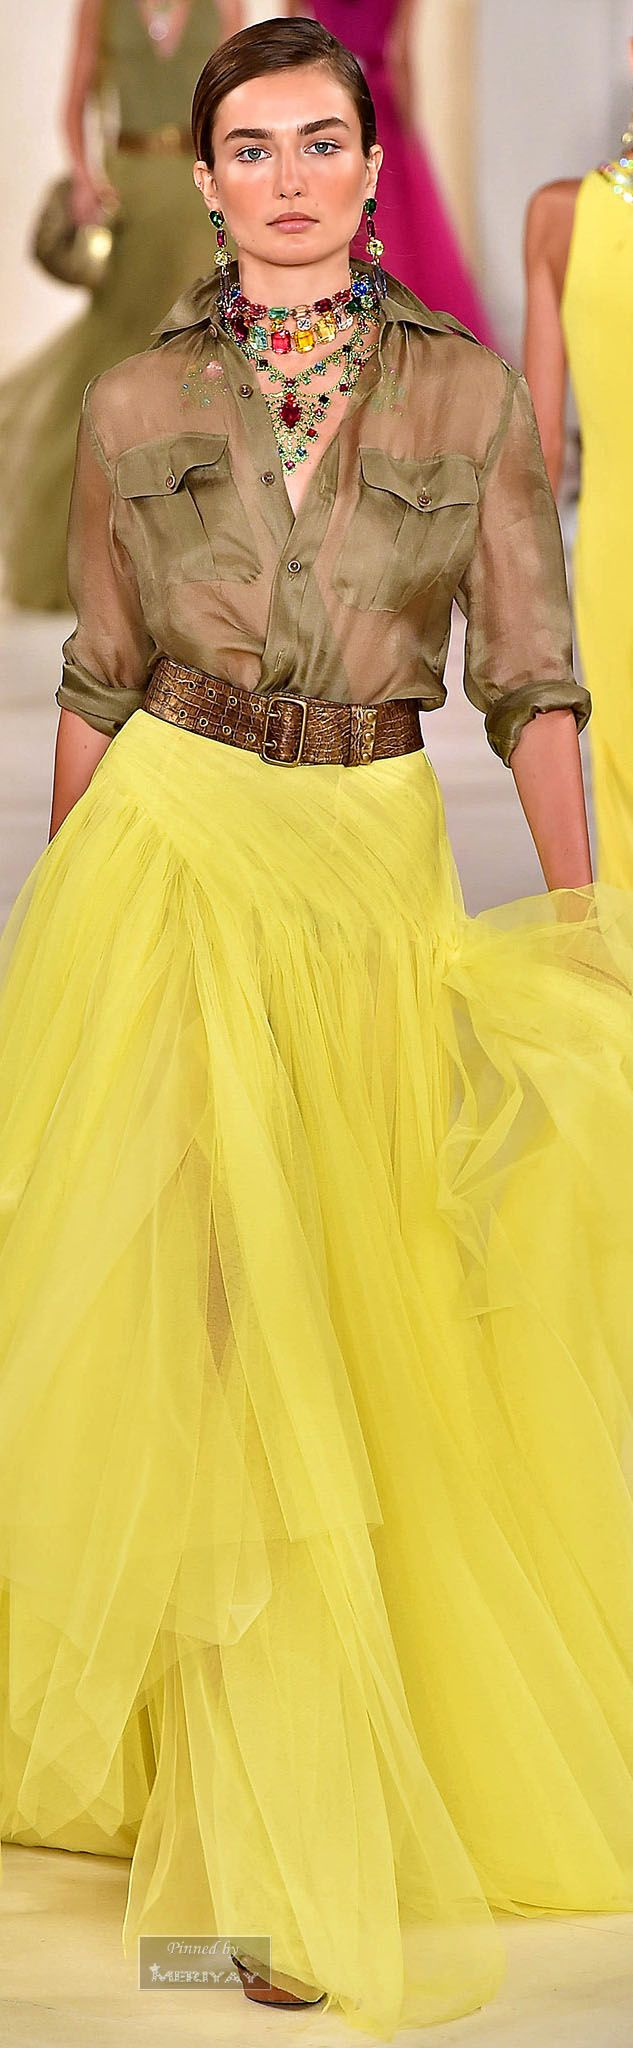 Elegant take on the yellow trend from the Ralph Lauren Spring 2015 collection #ralphlauren #yellowskirt #spring2015